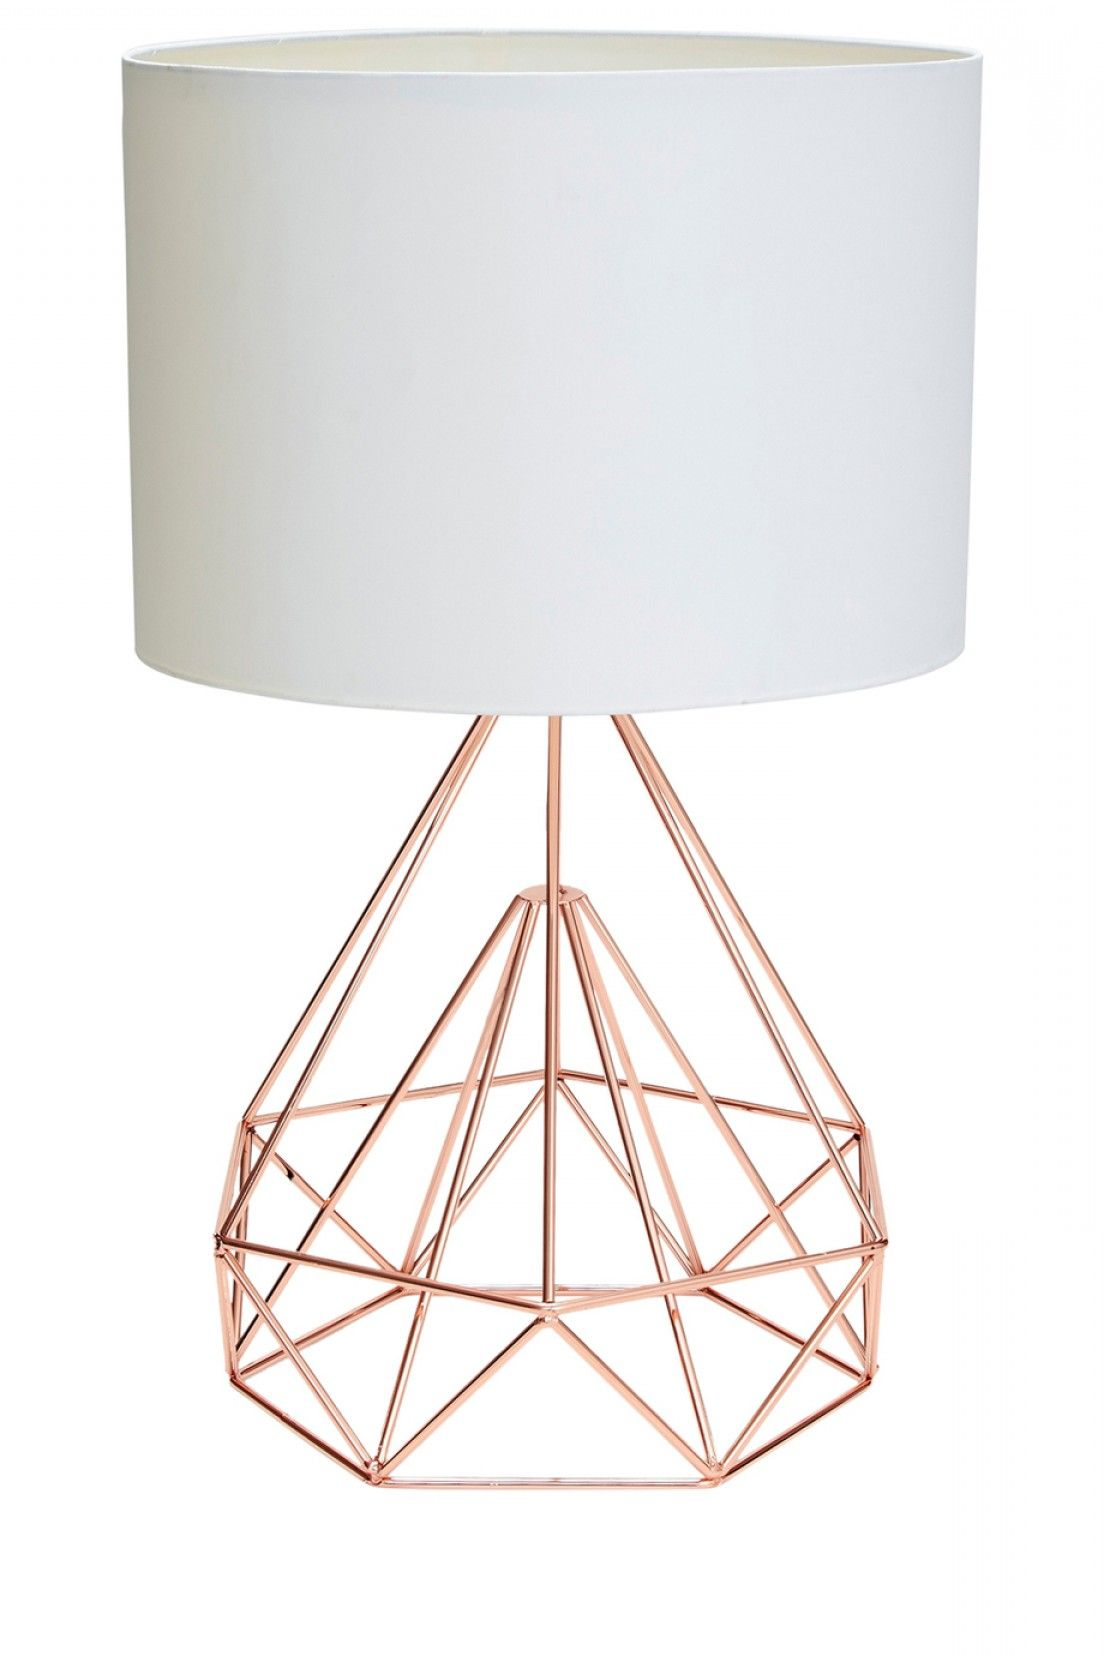 Salt and pepper chicago rose gold wire table lamp with white shade salt and pepper chicago rose gold wire table lamp with white shade greentooth Gallery